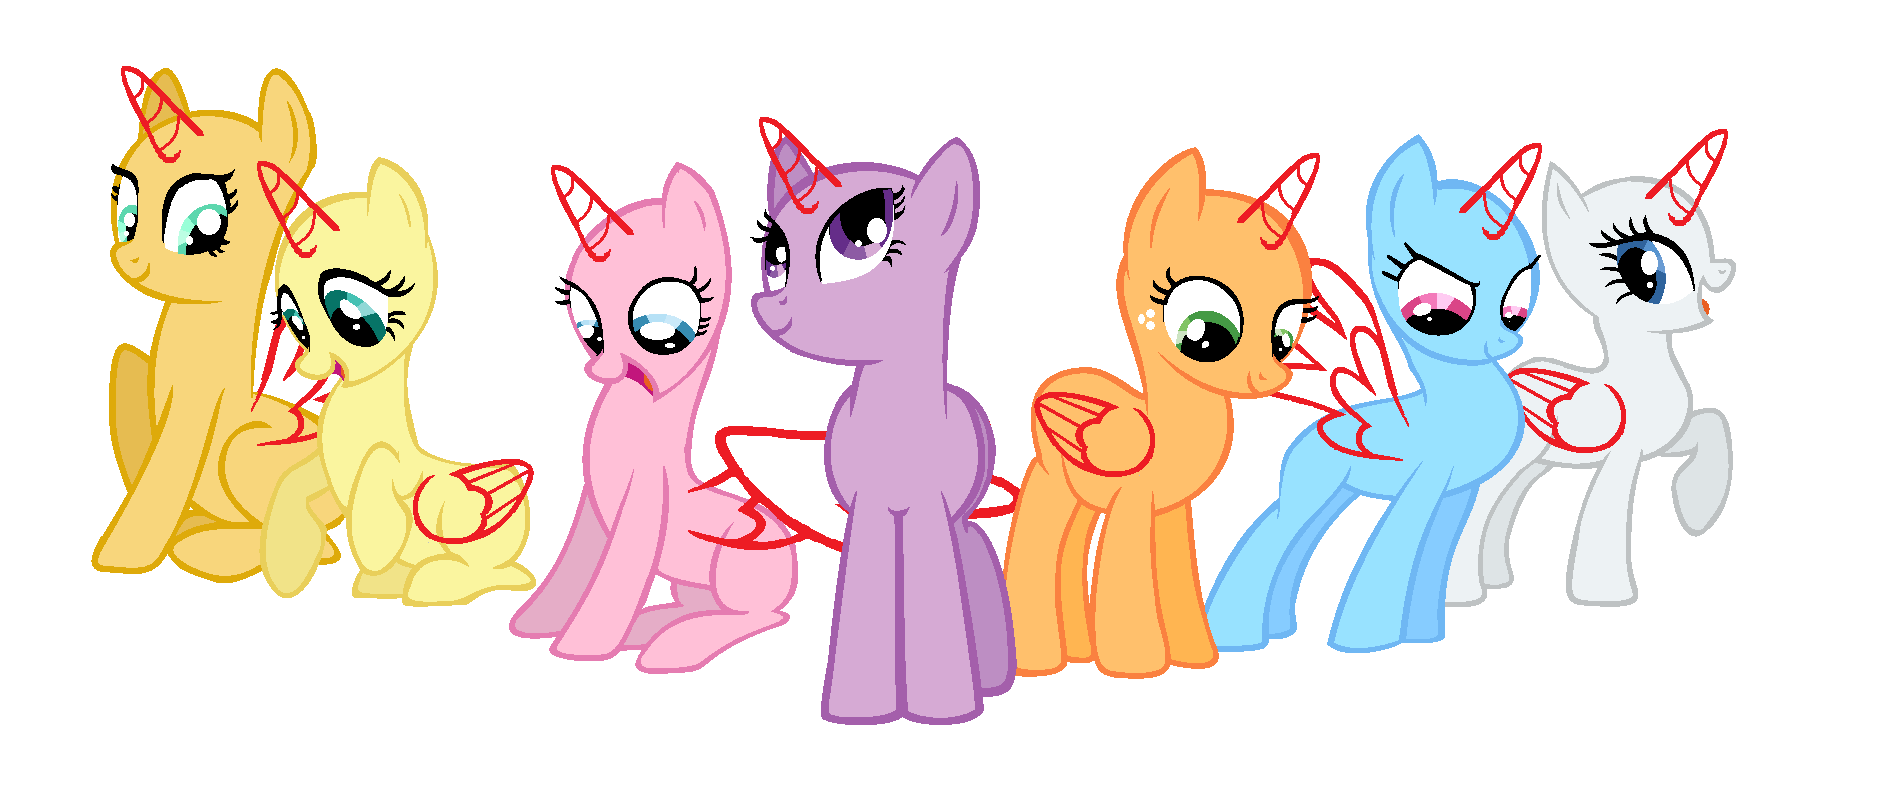 1 Base Elements of Harmony Mane 7 by laurka13579 on DeviantArt